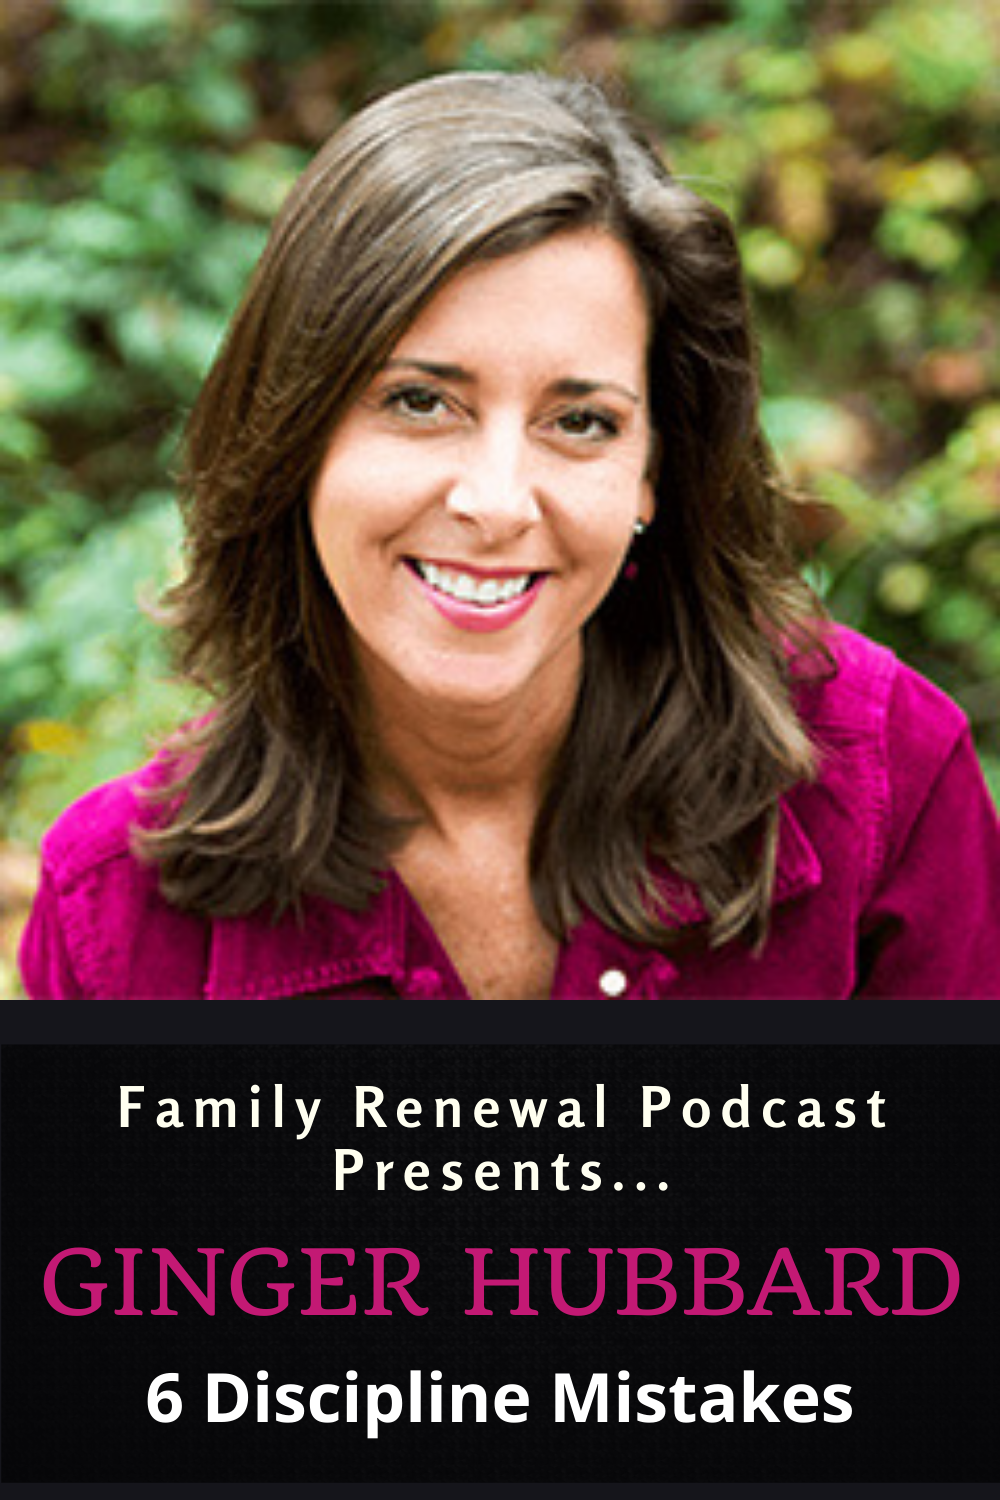 """Ginger Hubbard and Israel Wayne discuss """"Six Discipline Mistakes Parents Make."""" Ginger tells a great story about how she became a published author and how God led her to becoming a sought-after conference speaker and voice for Biblical parenting."""